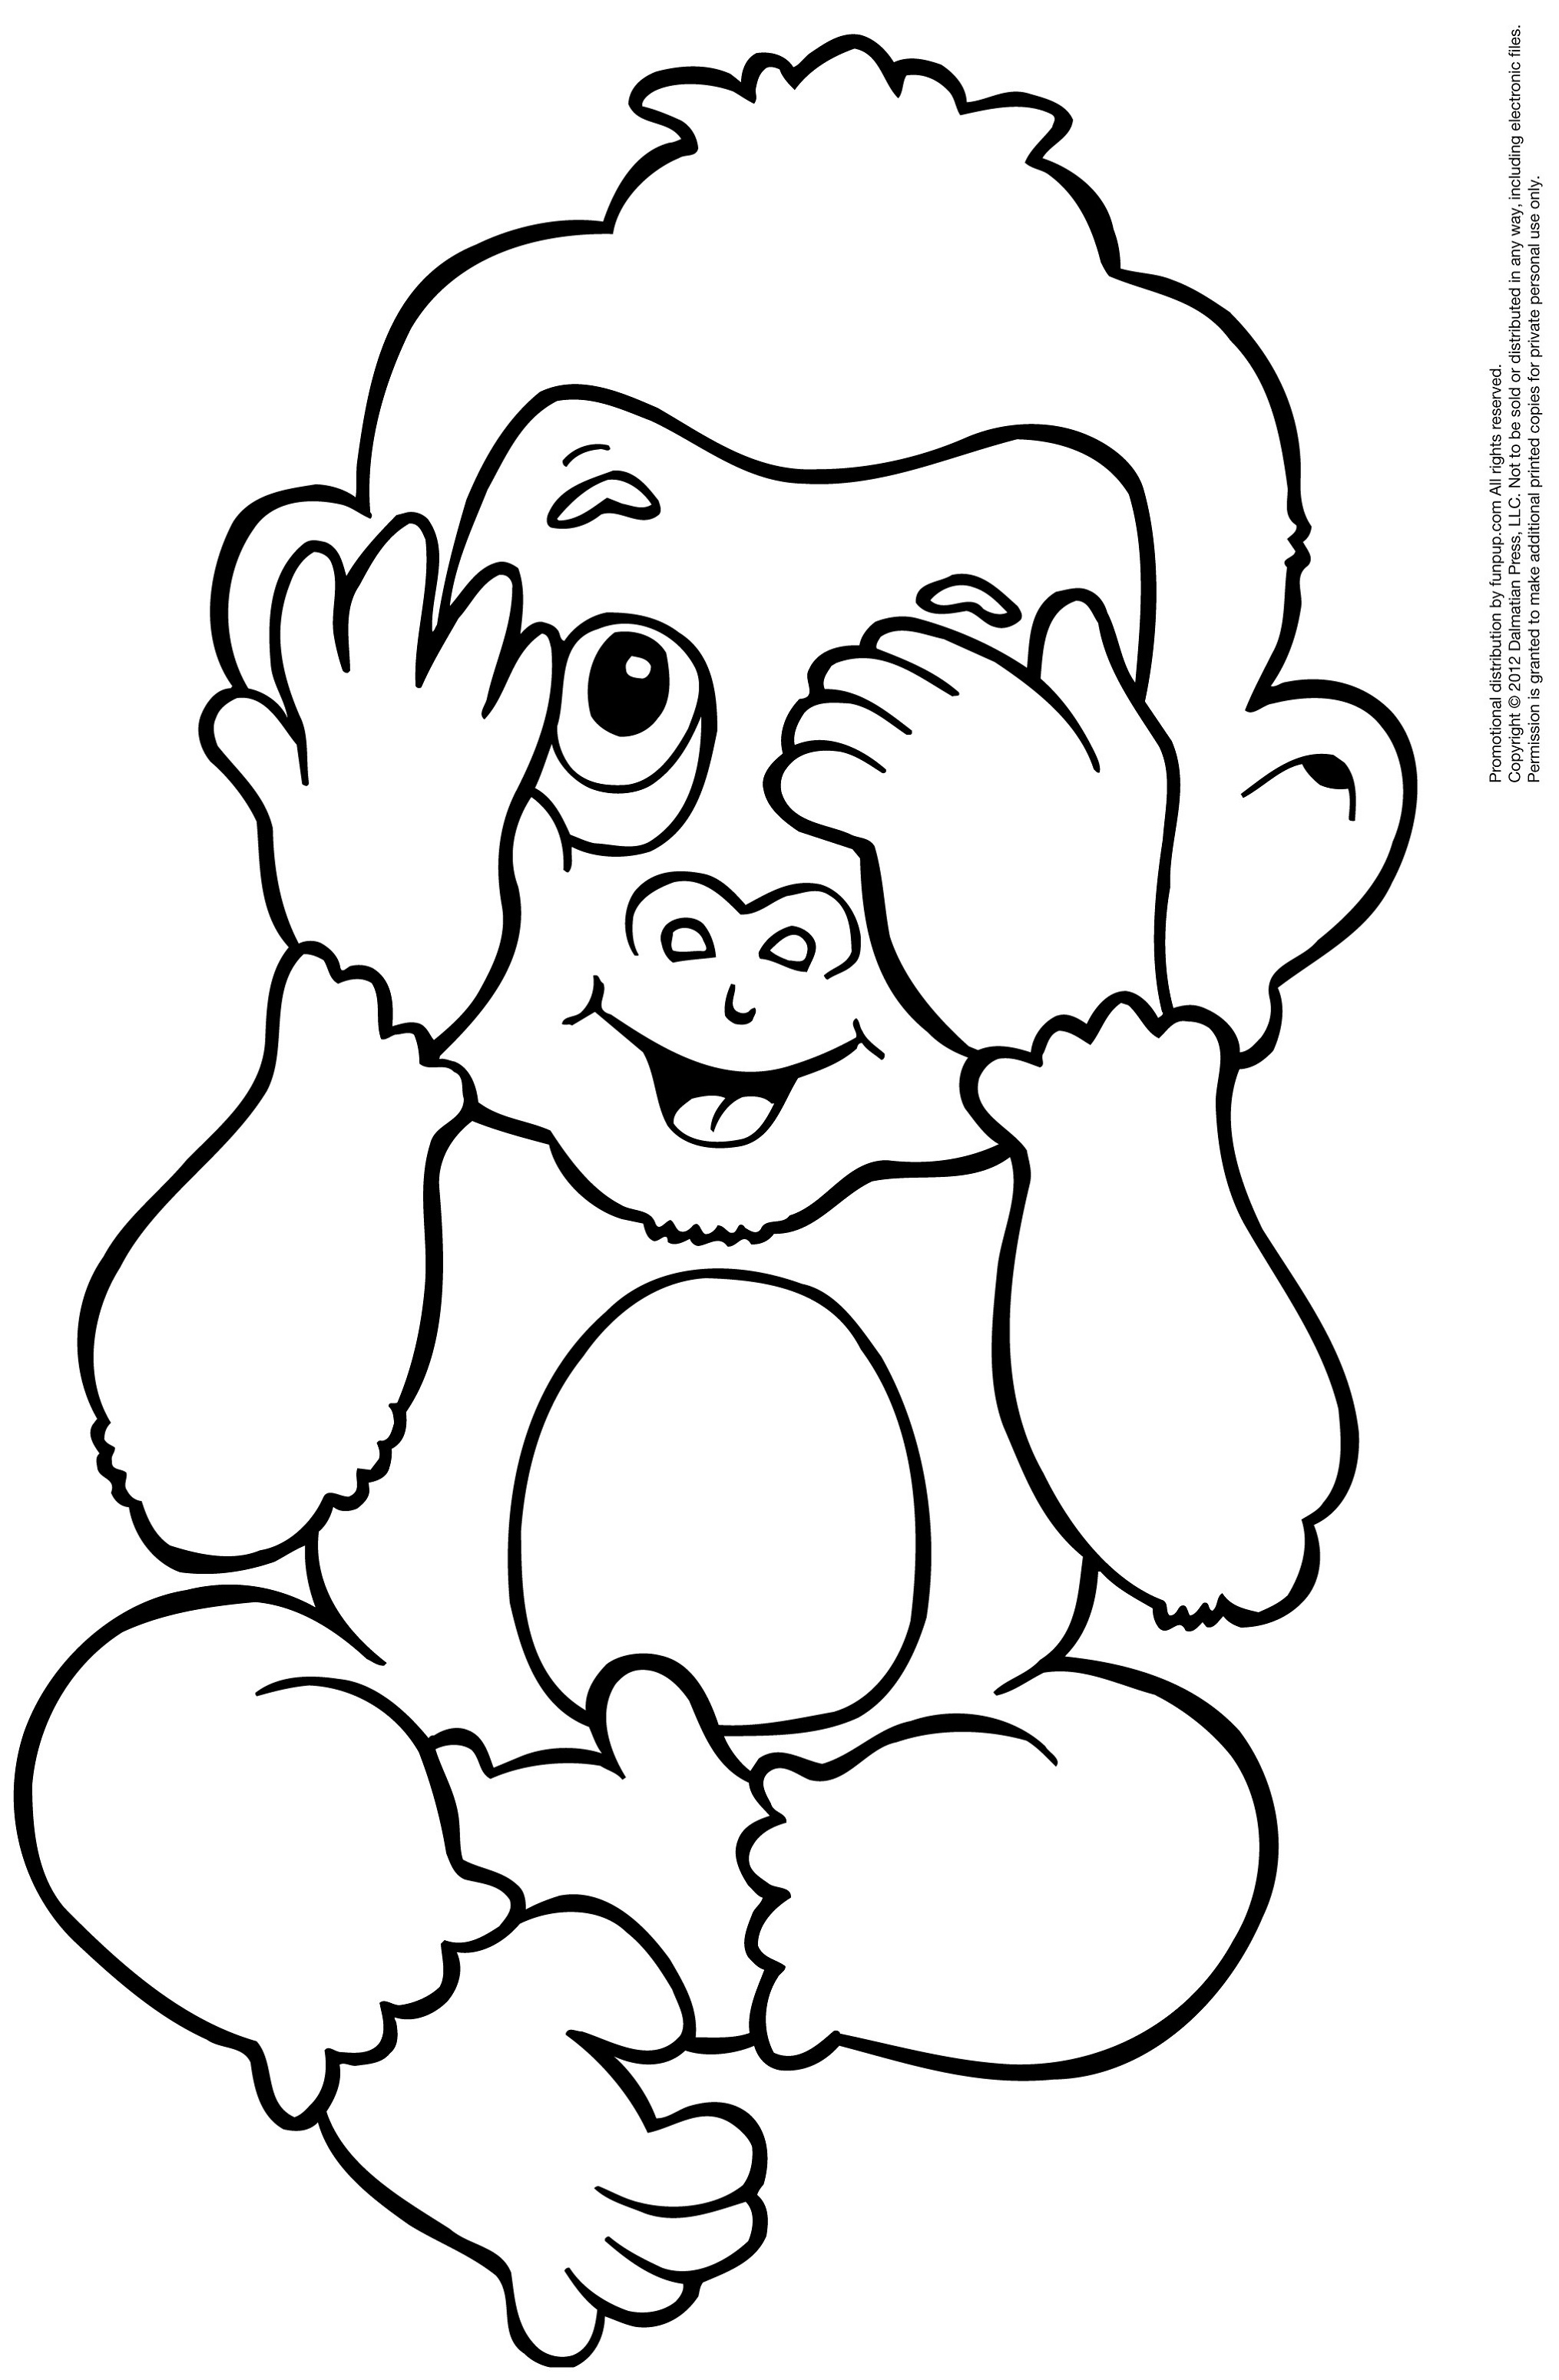 monkey pictures for coloring get this monkey coloring pages for adults 39041 coloring monkey pictures for